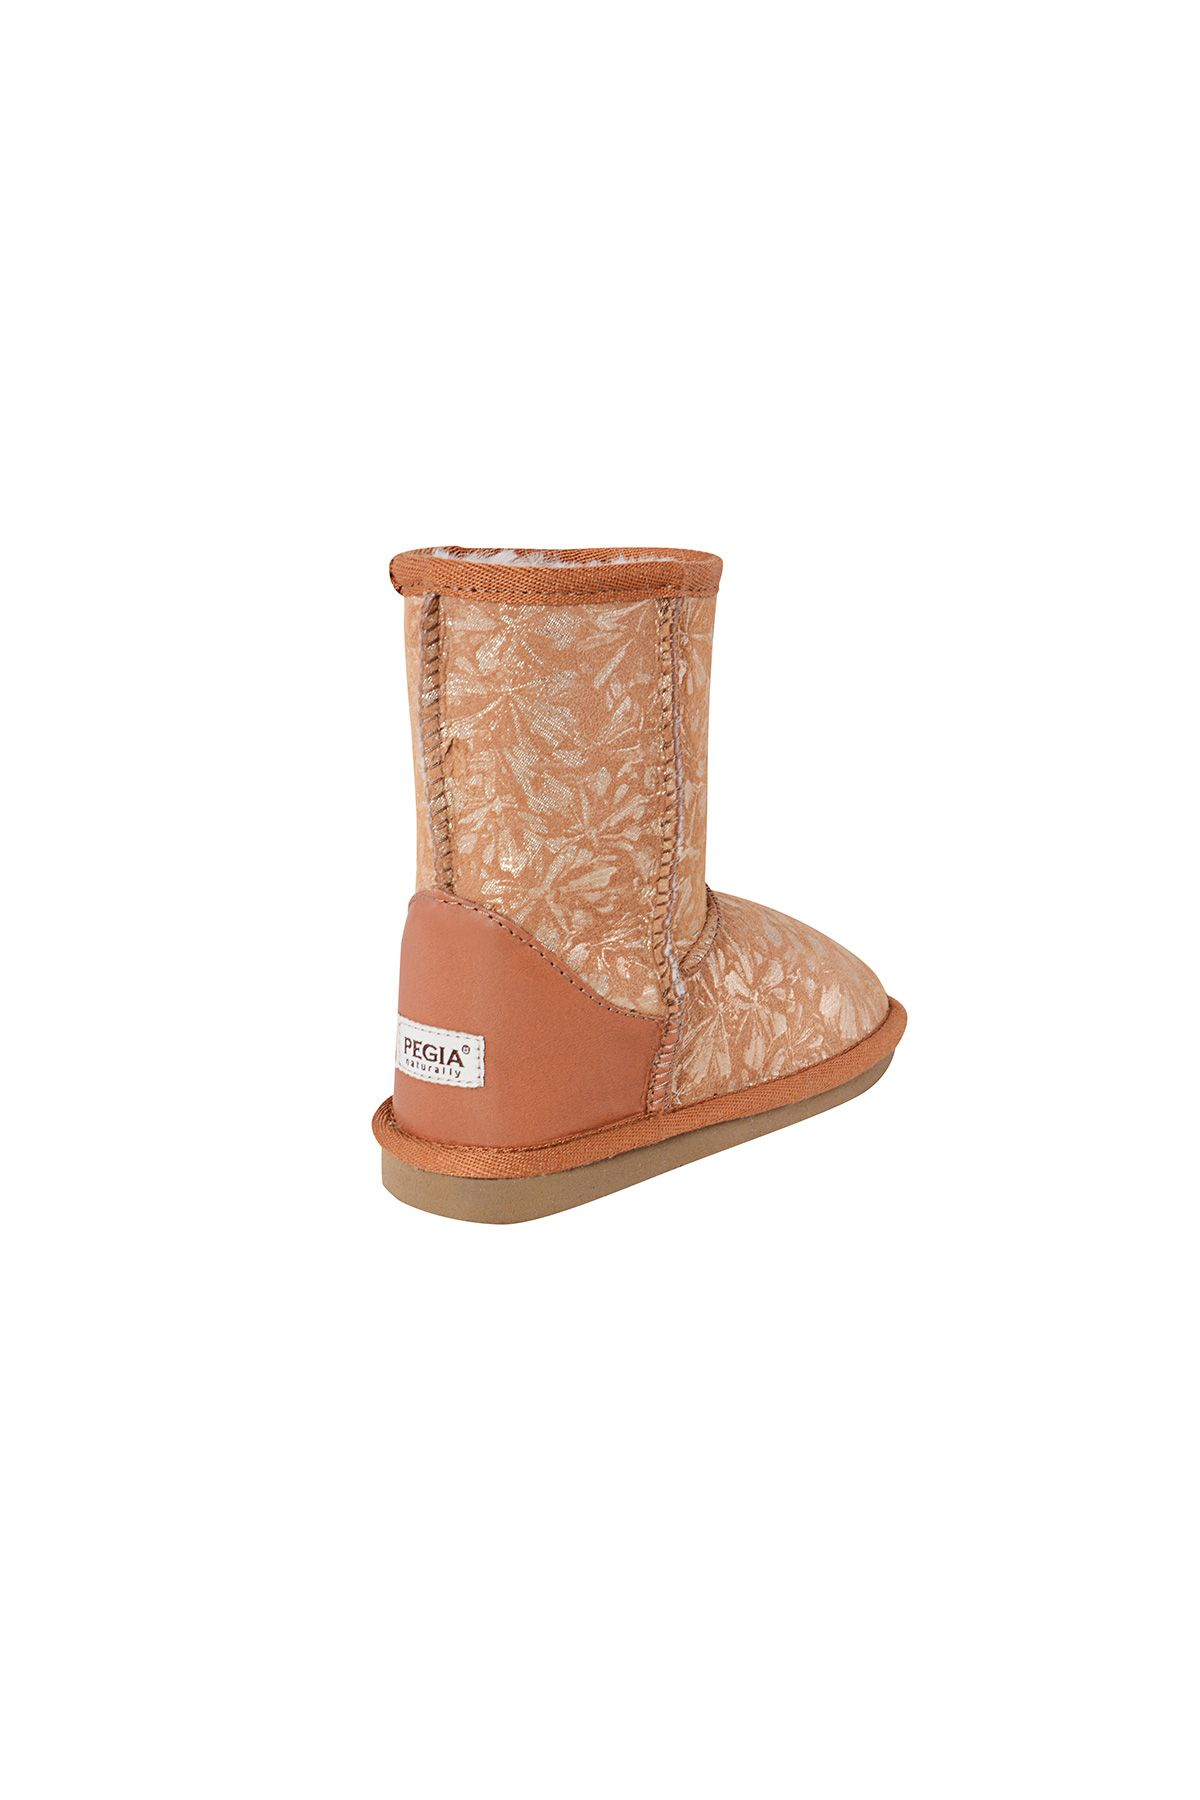 Pegia Classic Kids Boots From Sheepskin Fur With Flower Pattern Ginger